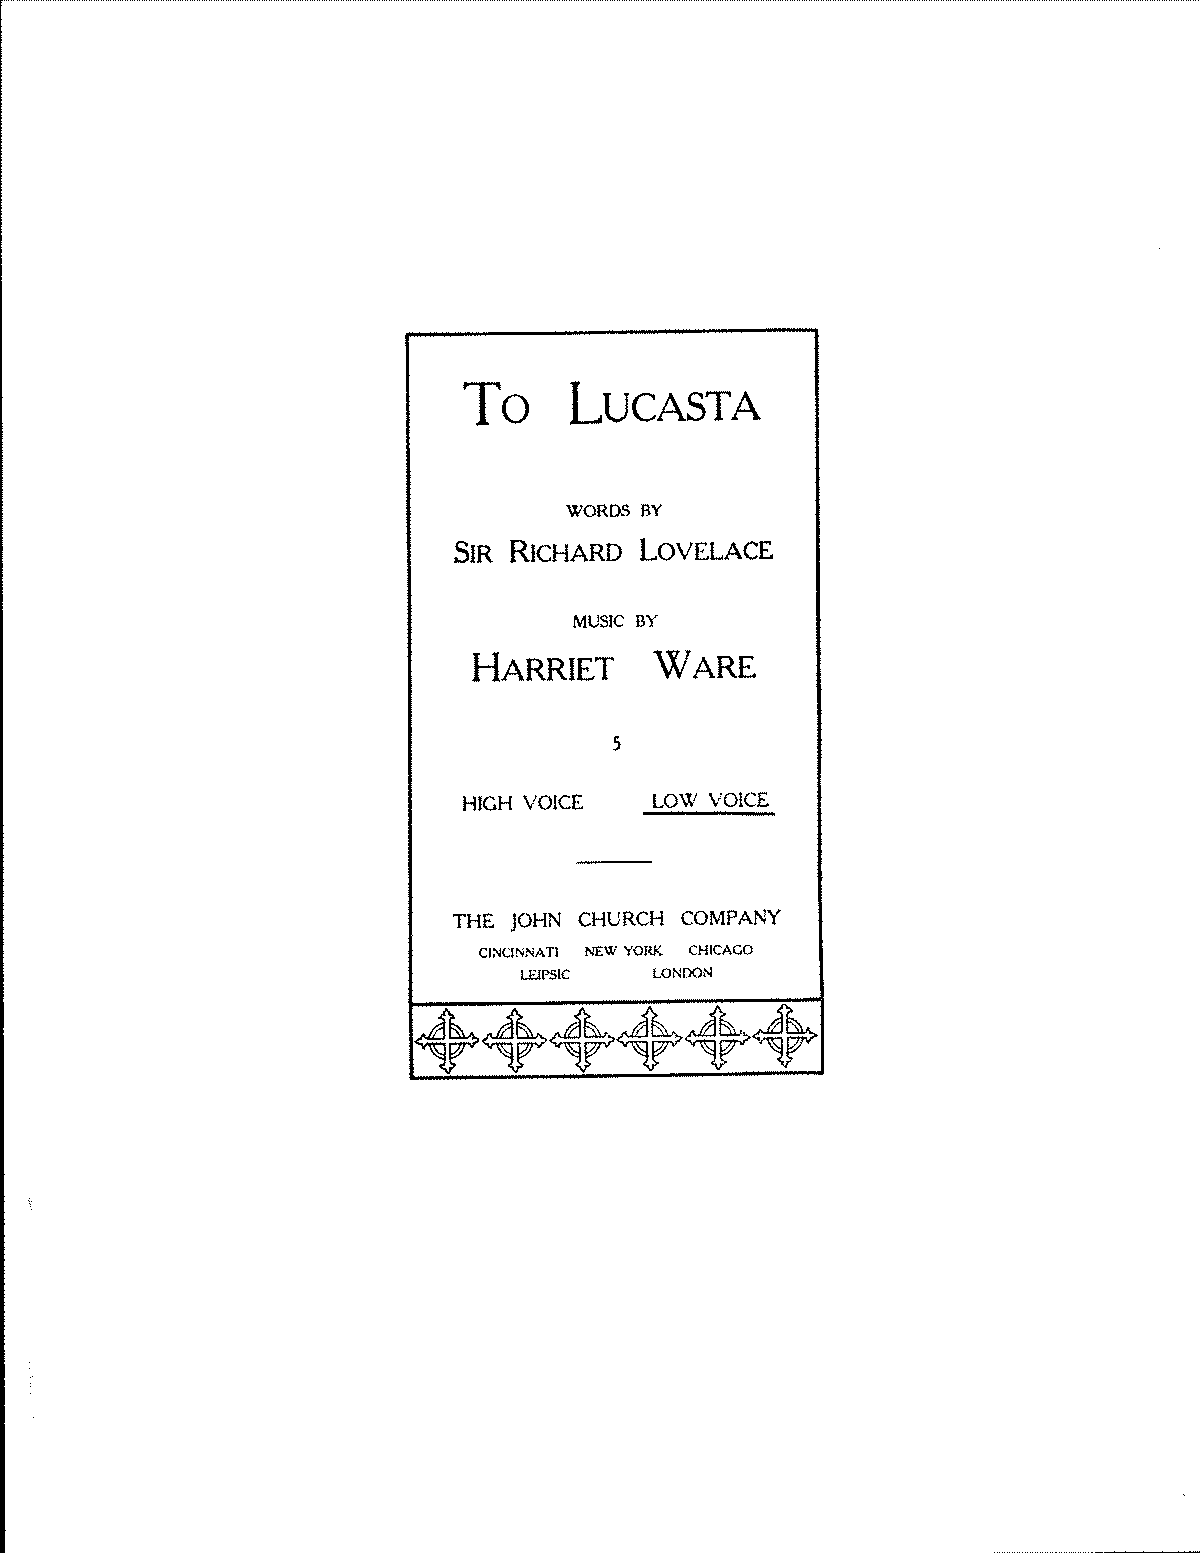 SIBLEY1802.1885.c25b-Ware To Lucasta.pdf